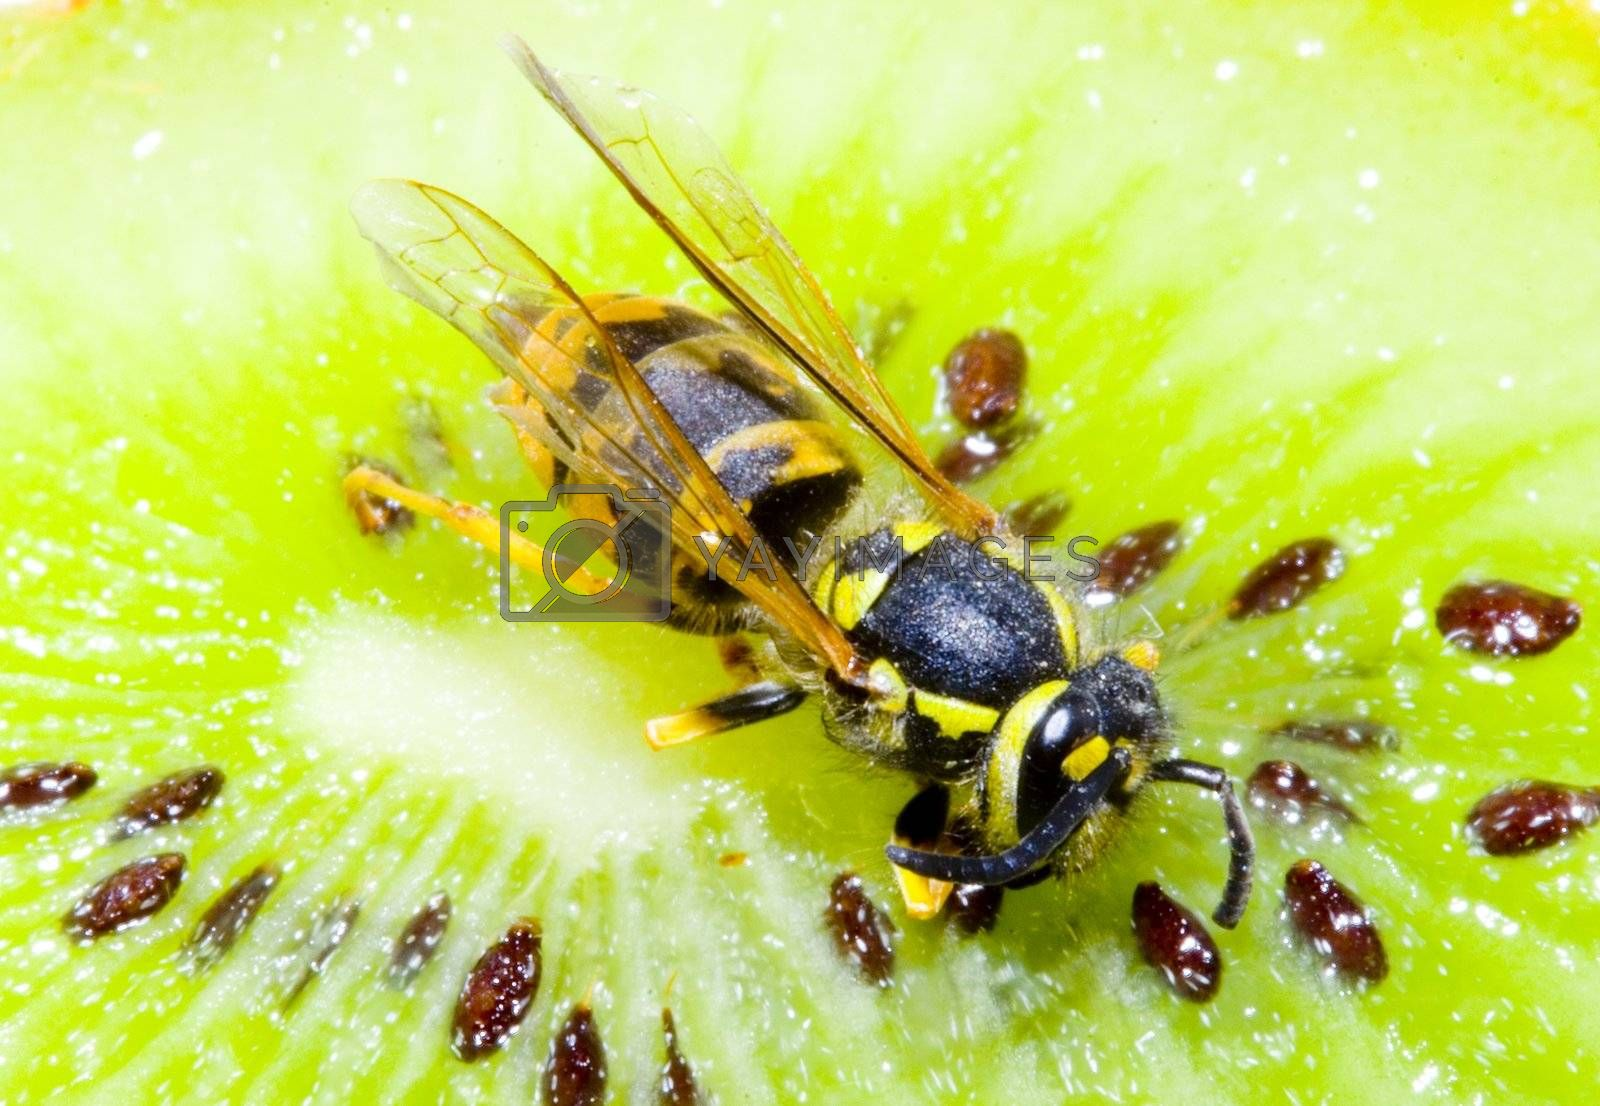 detail of a common wasp on a Kiwifruit - Vespula vulgaris